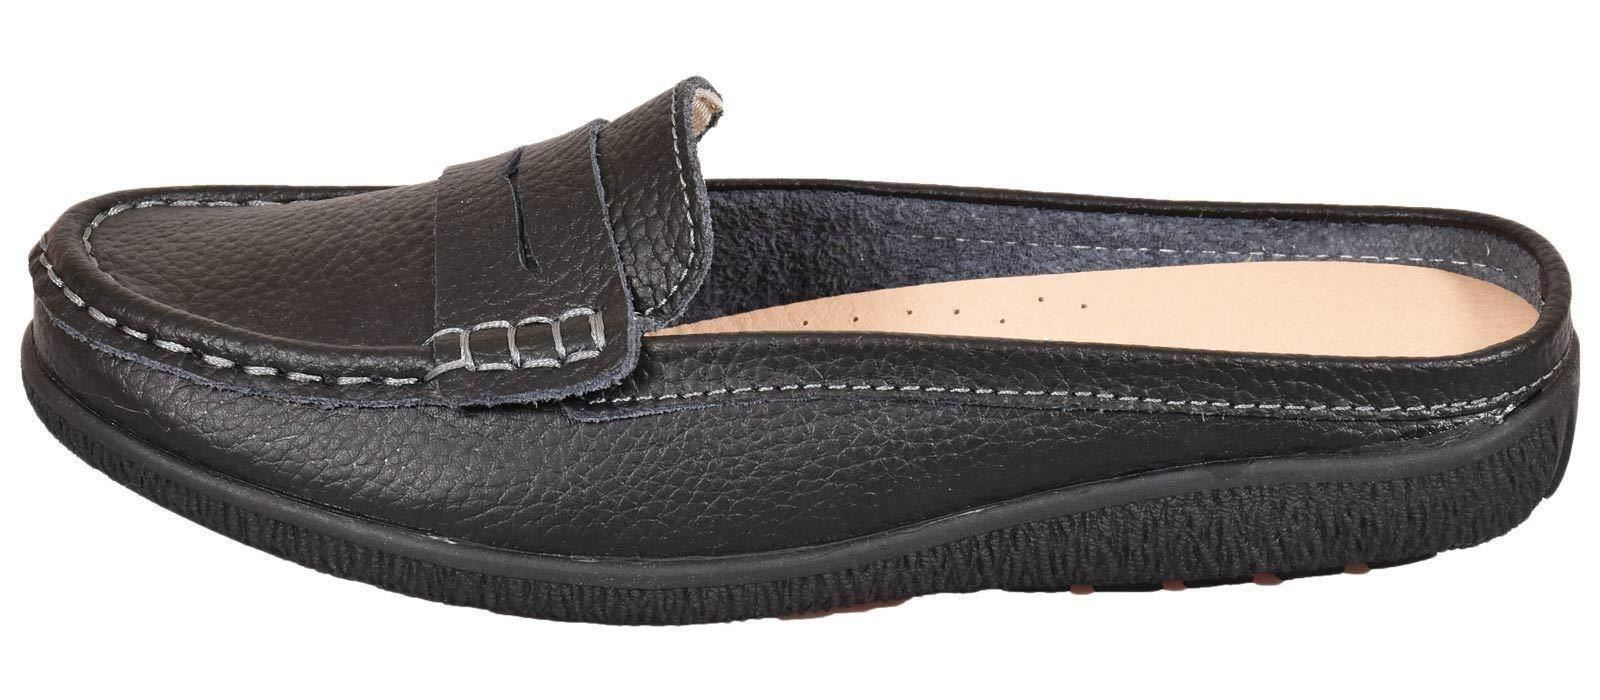 Ladies-Leather-Loafer-Mules-Comfort-Shoes-Womens-Slider-Moccasins-Shoes thumbnail 4